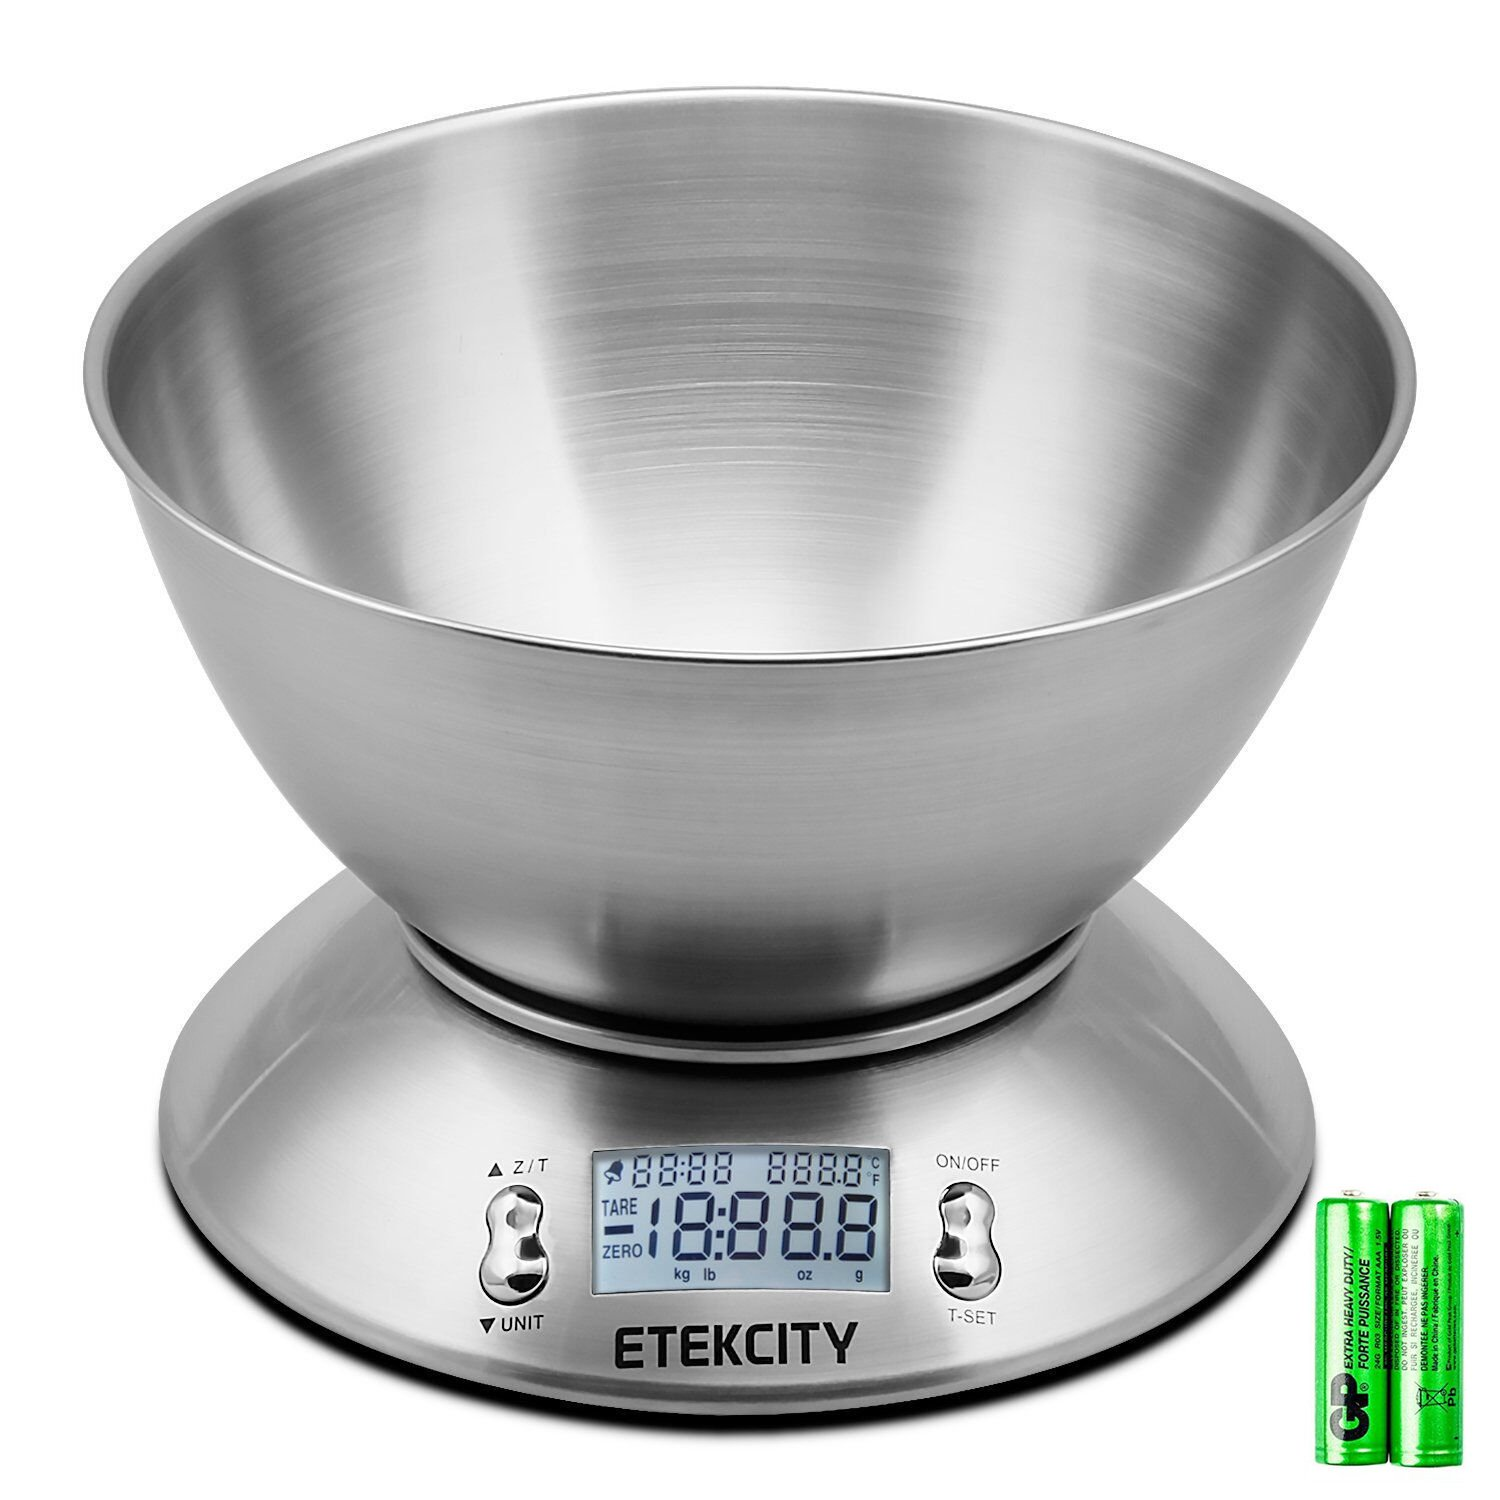 Etekcity Digital Multifunction Food Scale with Removable Bowl 2.15L